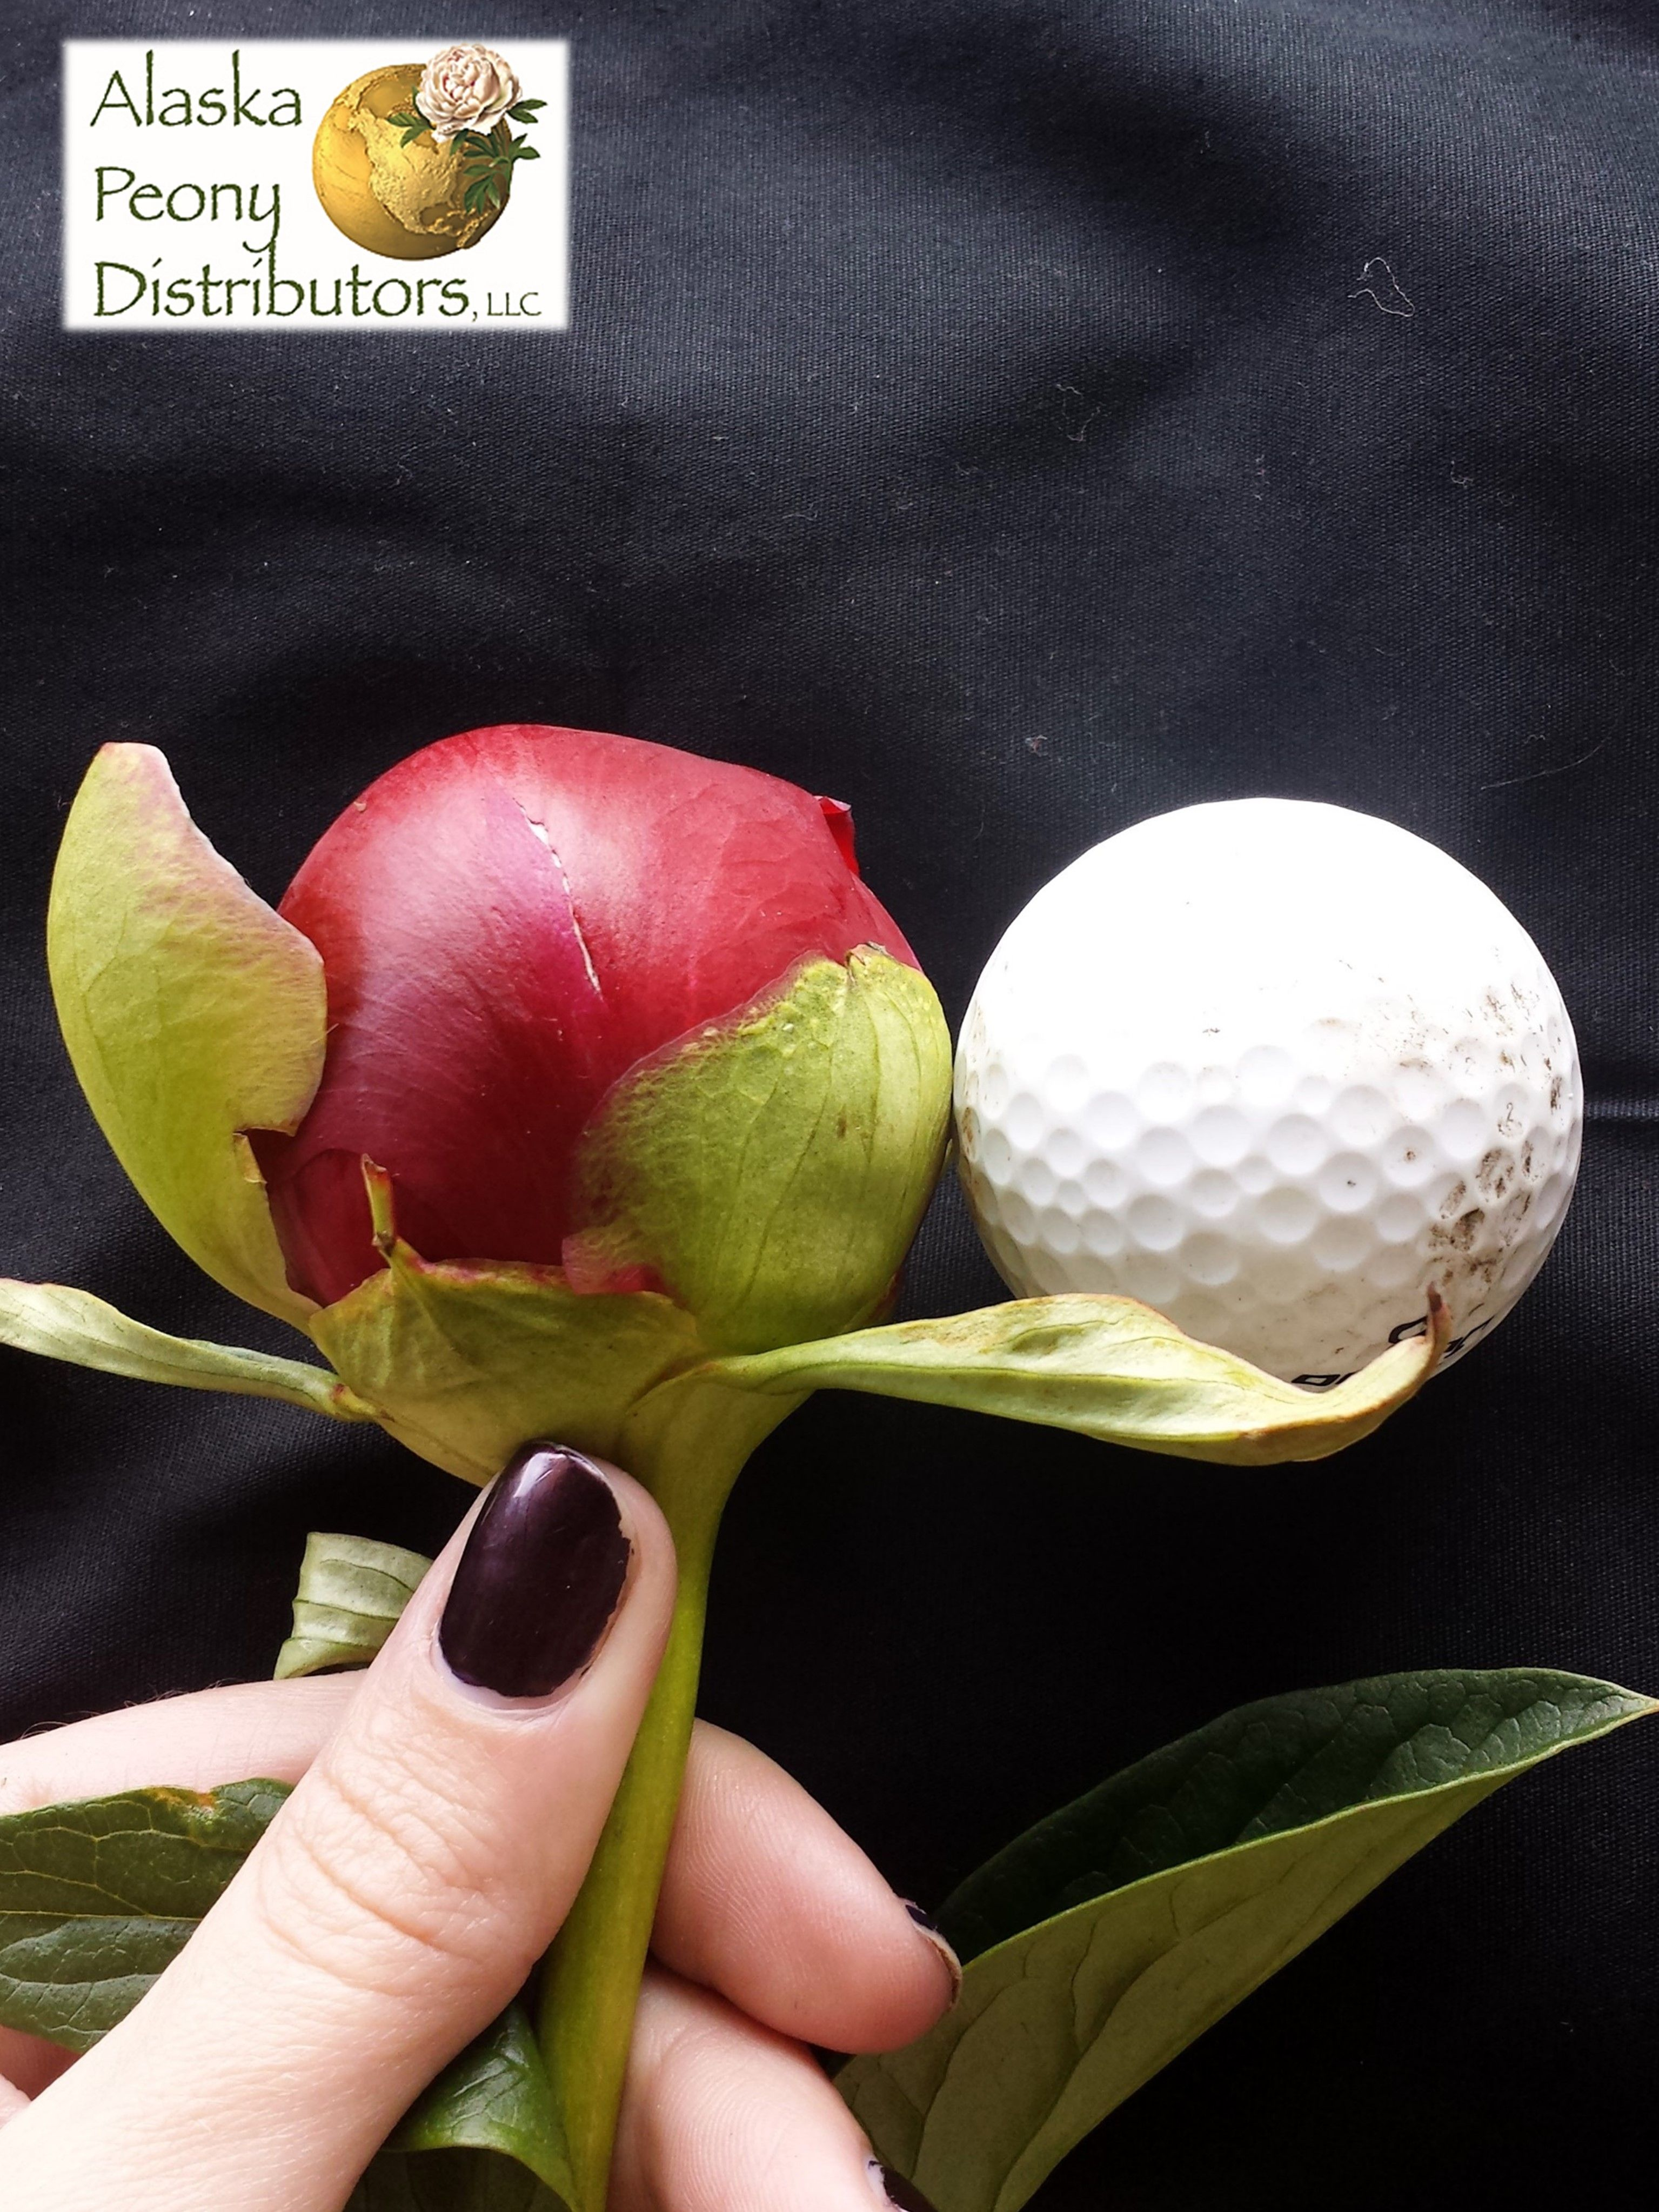 Here is a good size comparison for our peony bud heads.  There is an old grading scale for peonies established back in the early 1900's but Alaska Peonies tend to top right off of that scale, so we are a grade of our own!